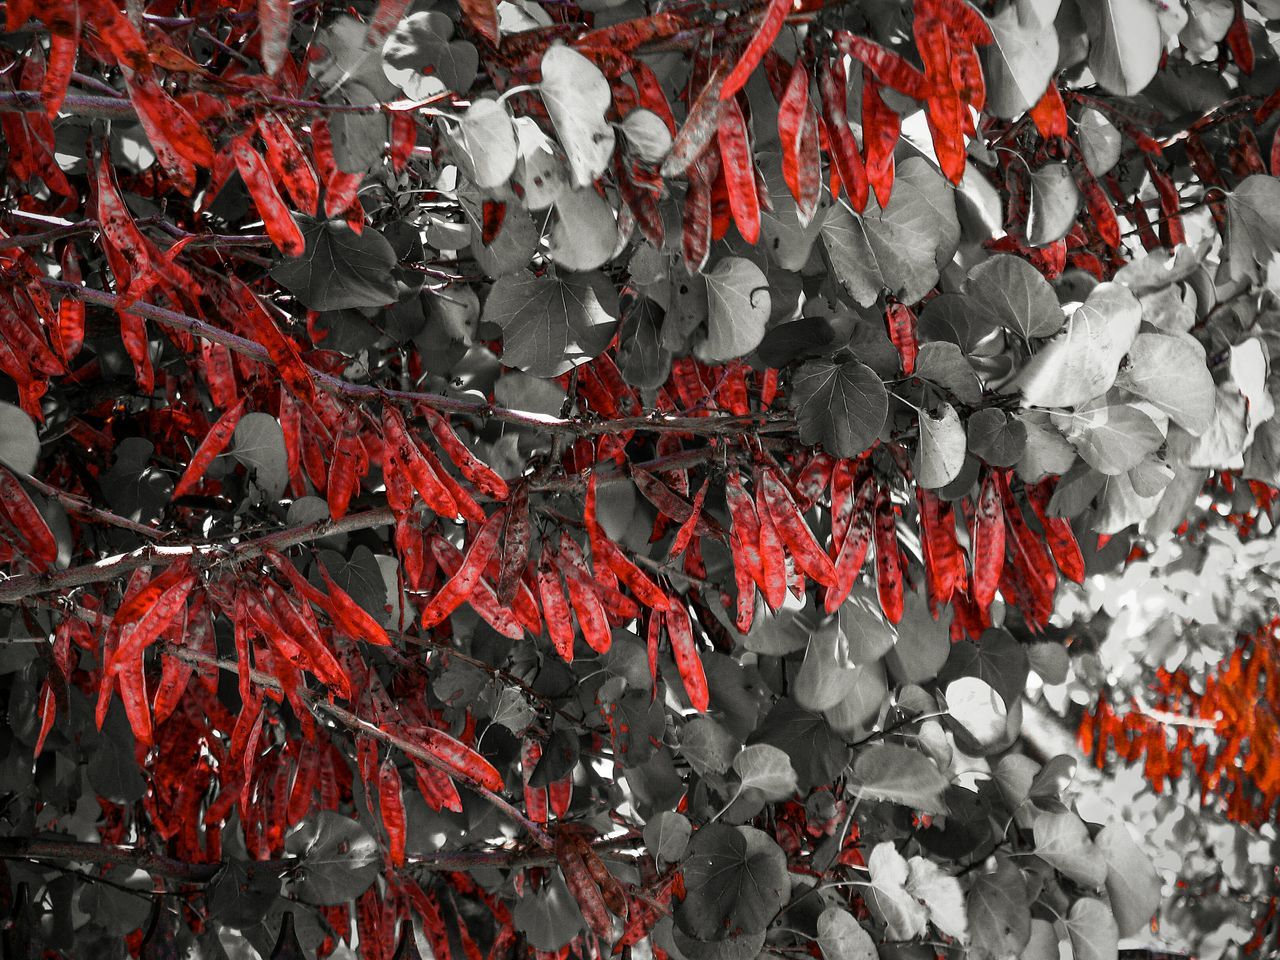 One Pic/2 Edits Carmine Red Red Leaves Shades Of Red Season  Autumn Backgrounds Leaves Abundance Nature Blossom Growth Beauty In Nature Botany Vibrant Color Nature_collection Nature On Your Doorstep Plants Tree Branches Blooming Fine Art Monochrome Photography